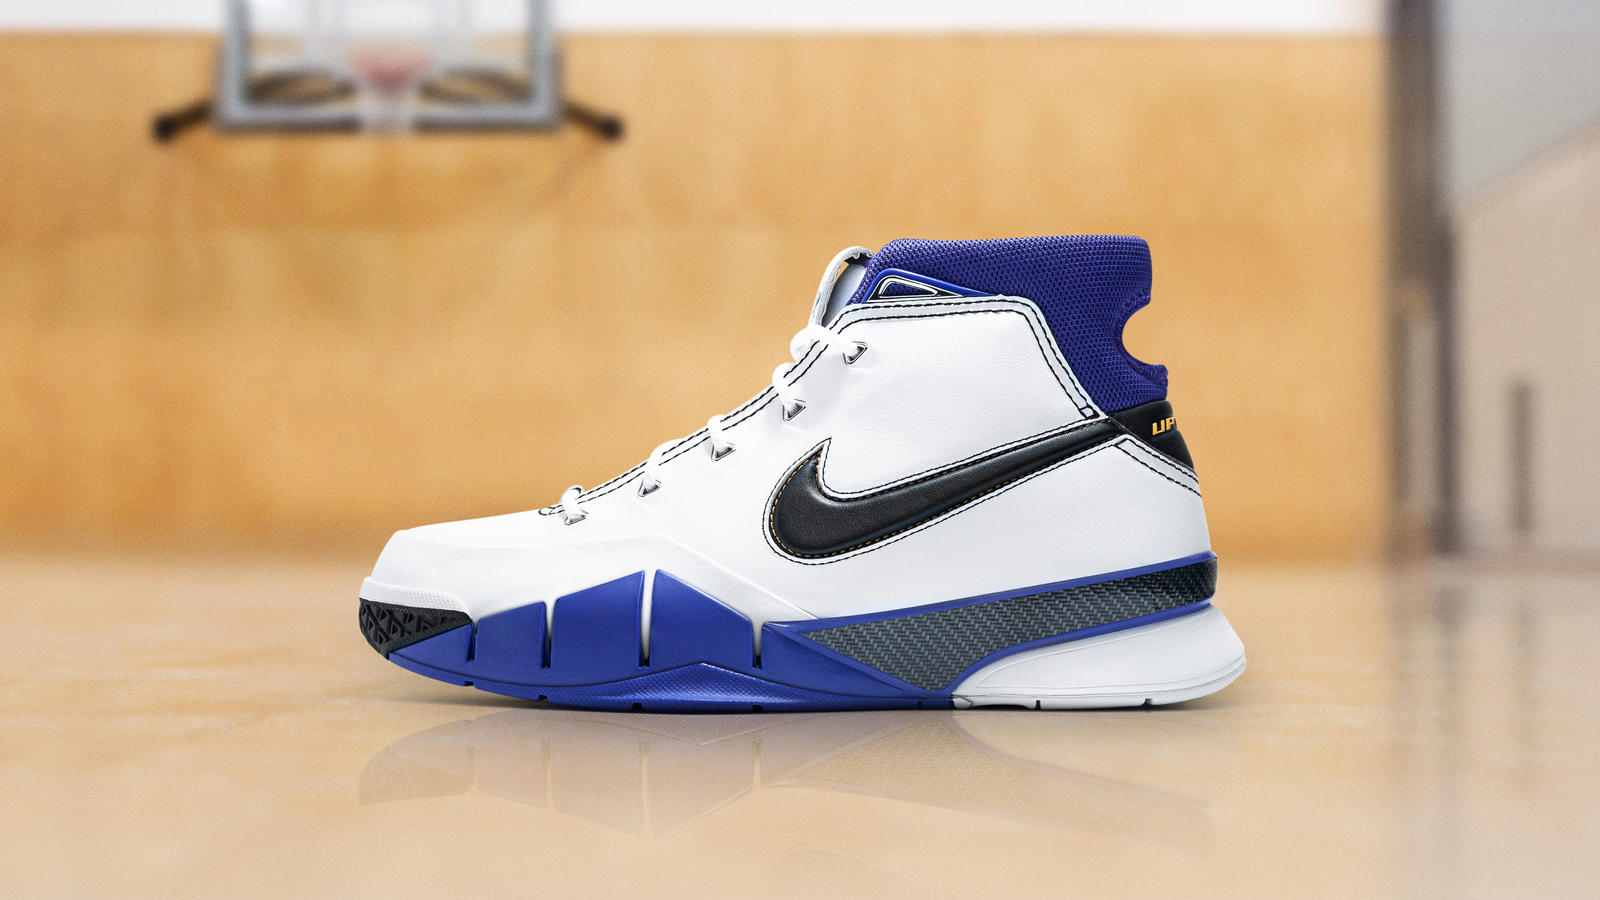 Featuredfootwear kobe1 protro  81ptgame 1.8.18 1242 hd 1600